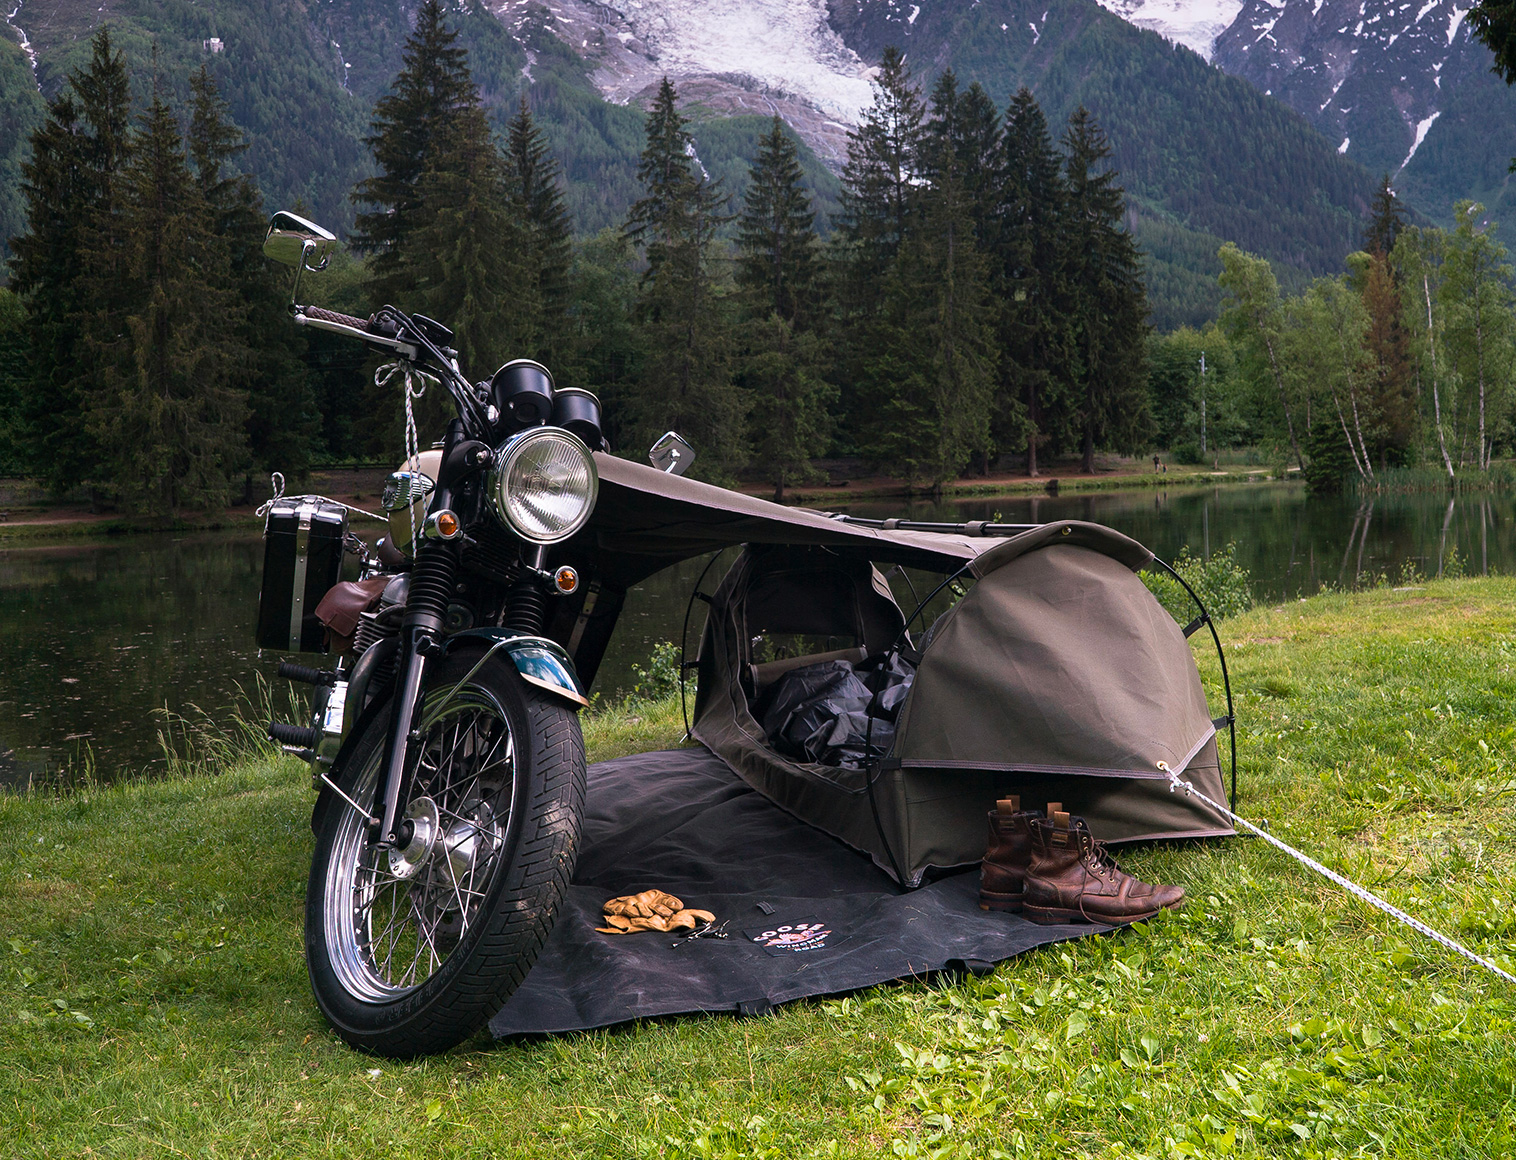 The Goose is Made for Motorcycle Camping at werd.com